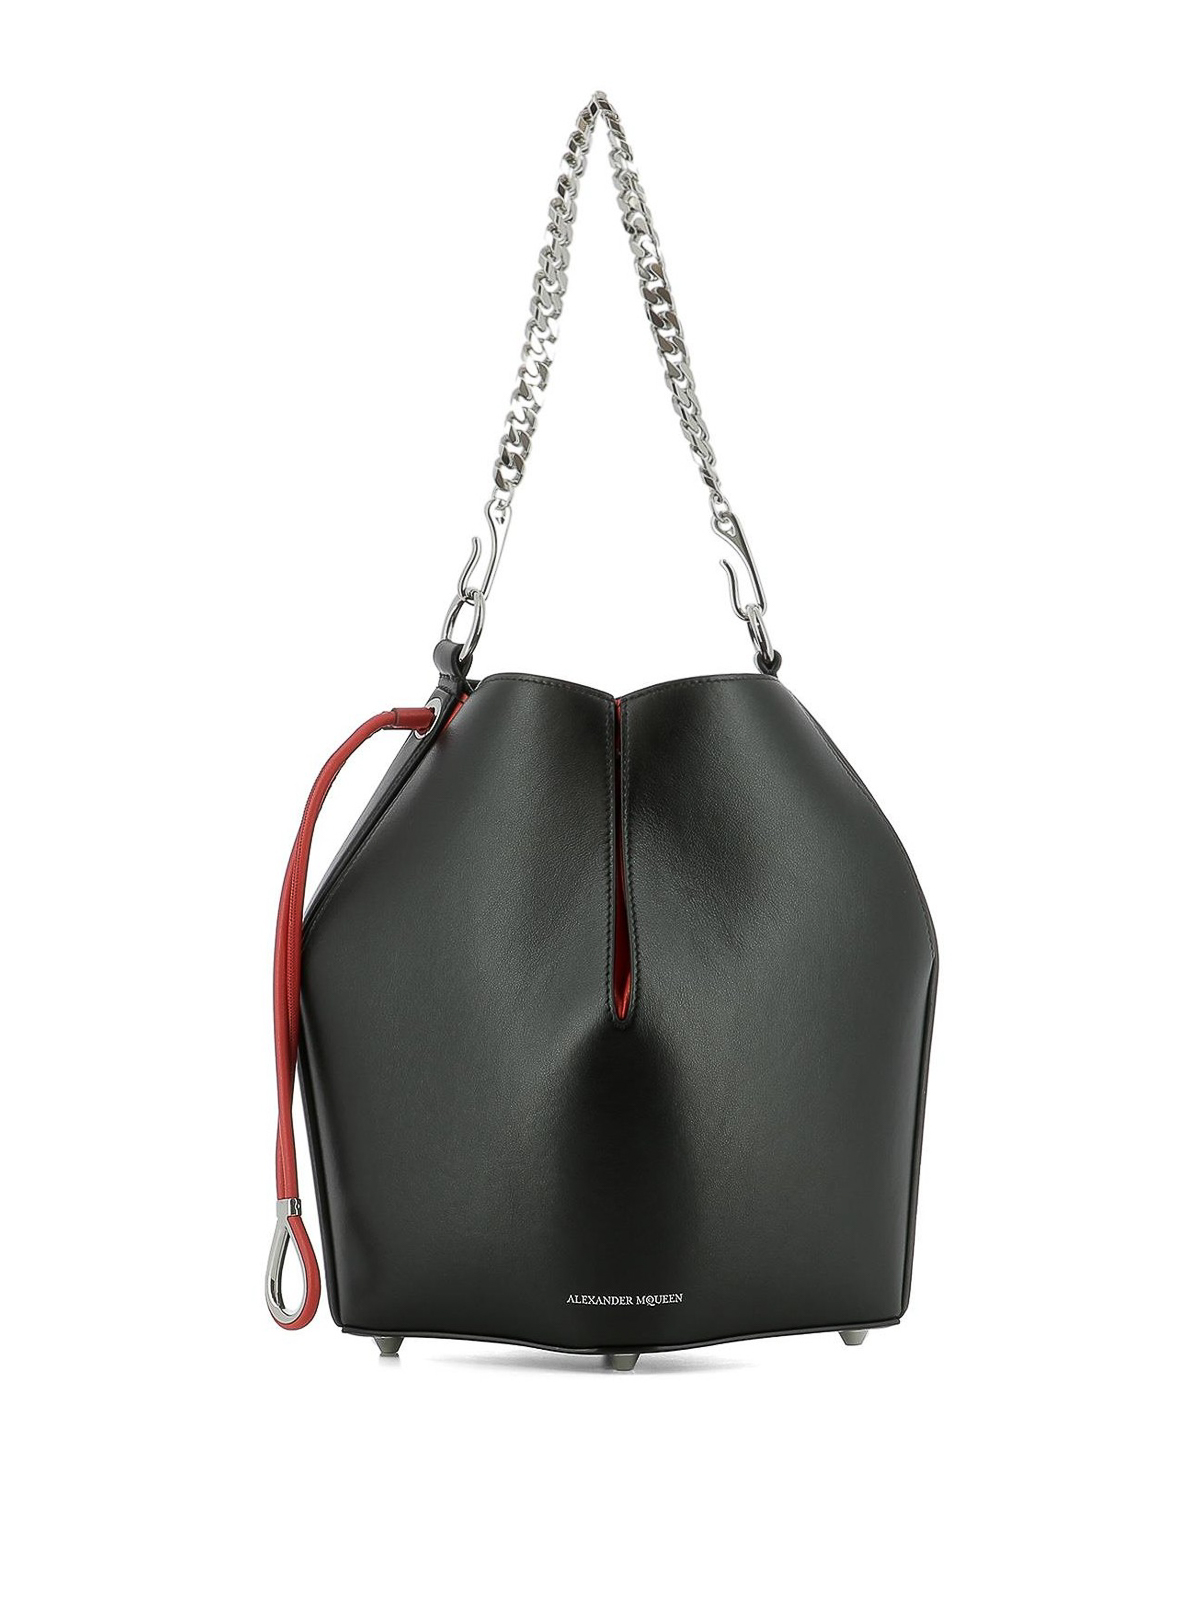 d43635215889 ALEXANDER MCQUEEN  Bucket bags - The Bucket Bag black and red leather bag